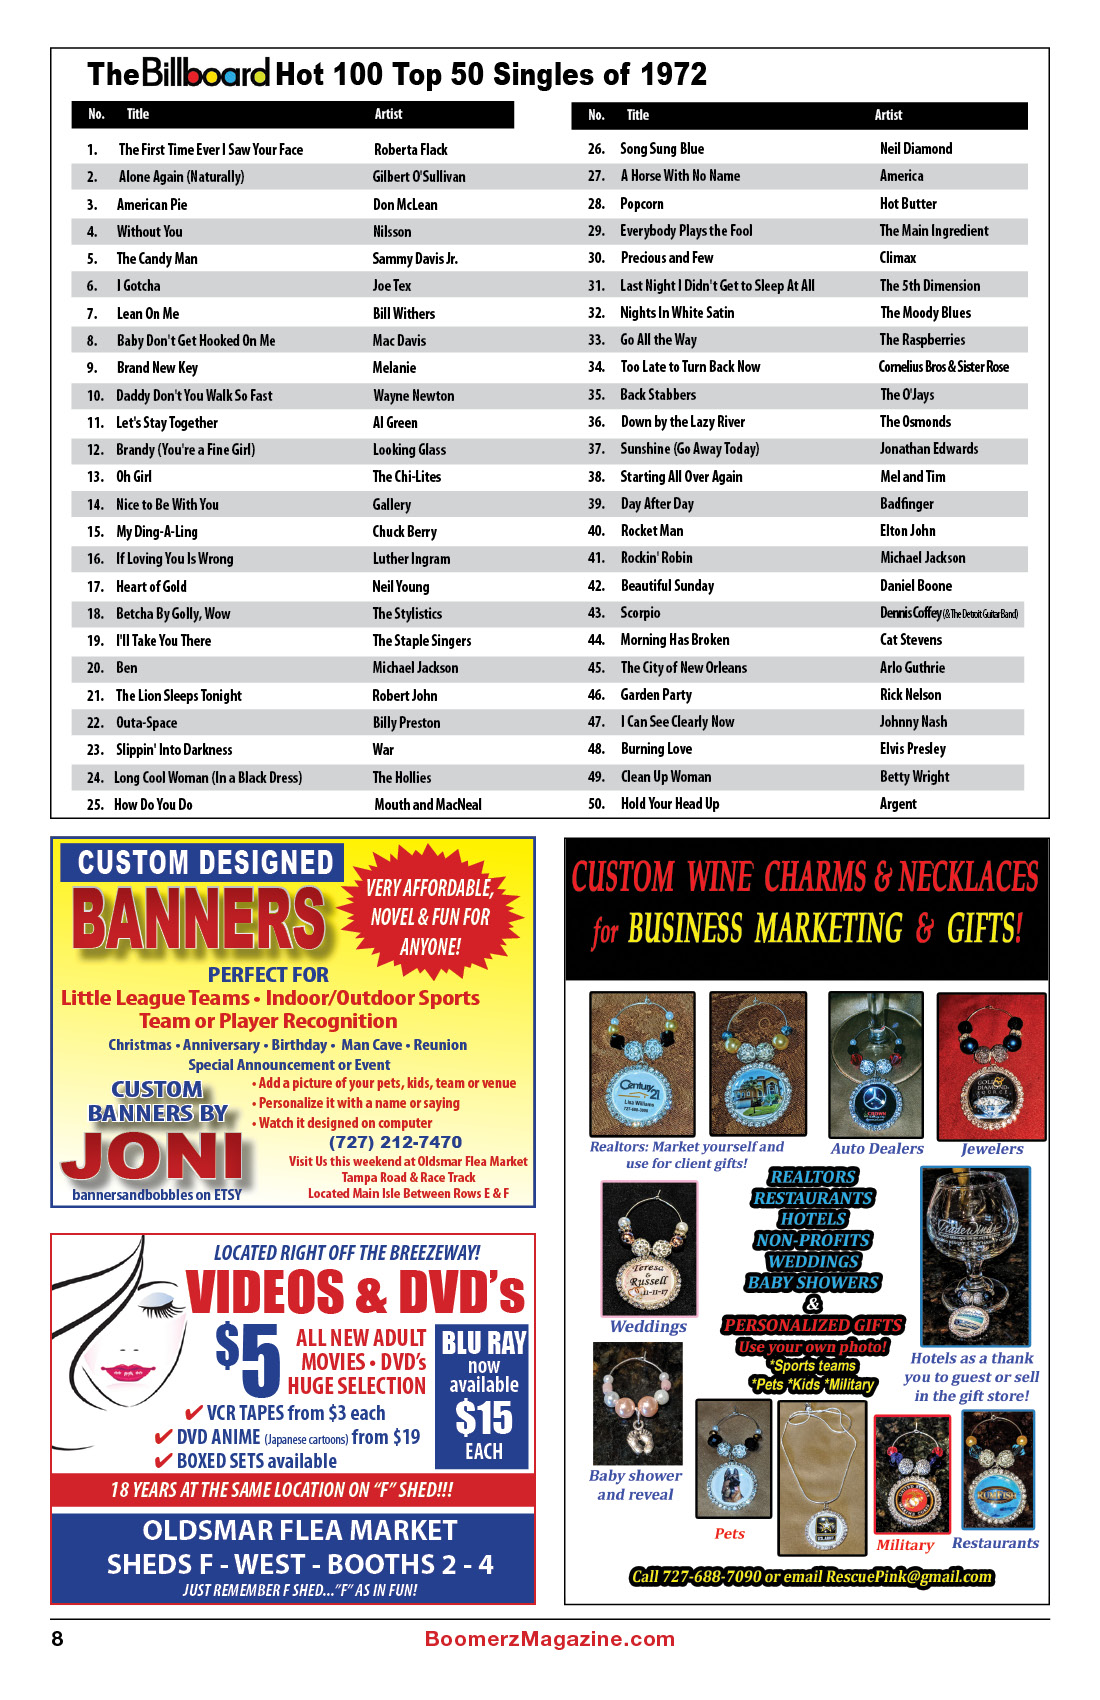 2018 October Boomerz Magazine Page 8 Billboard Hot 100 Top 50 Singles of 1972